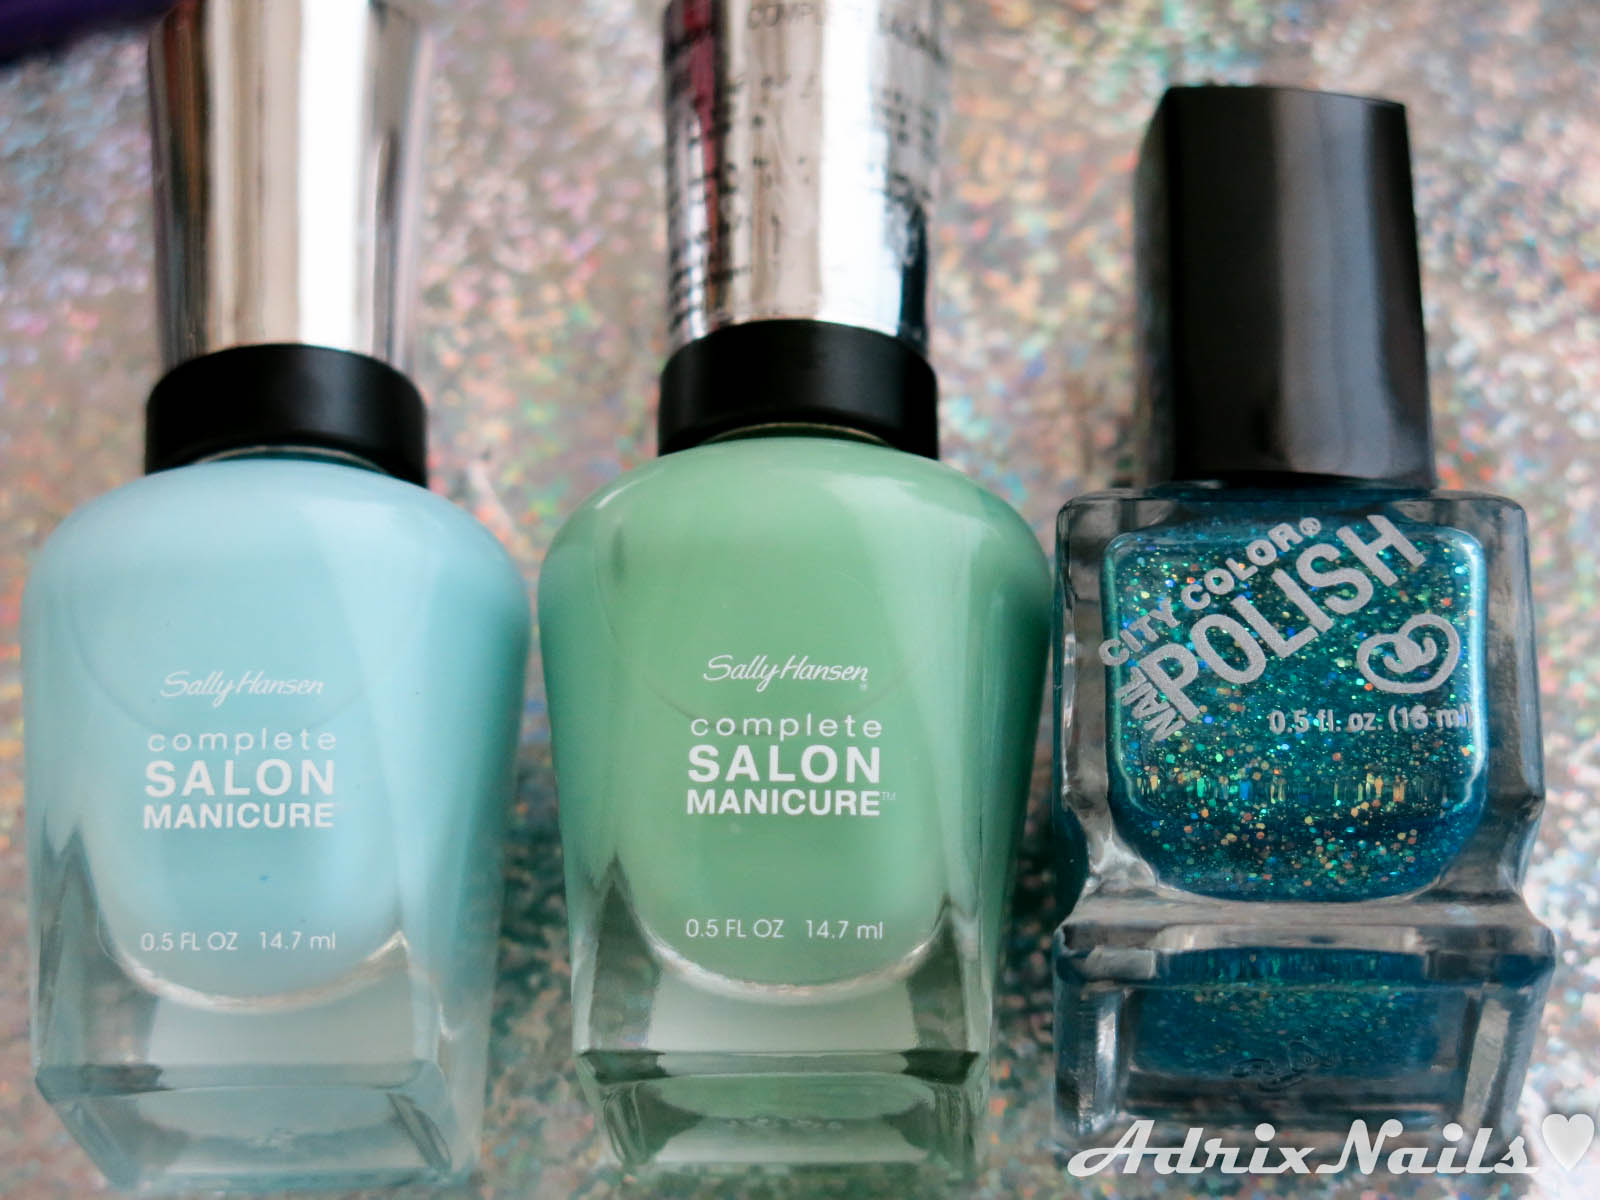 Uñas del día: Degradado con Sally Hansen y City Color | Adrix Nails ...